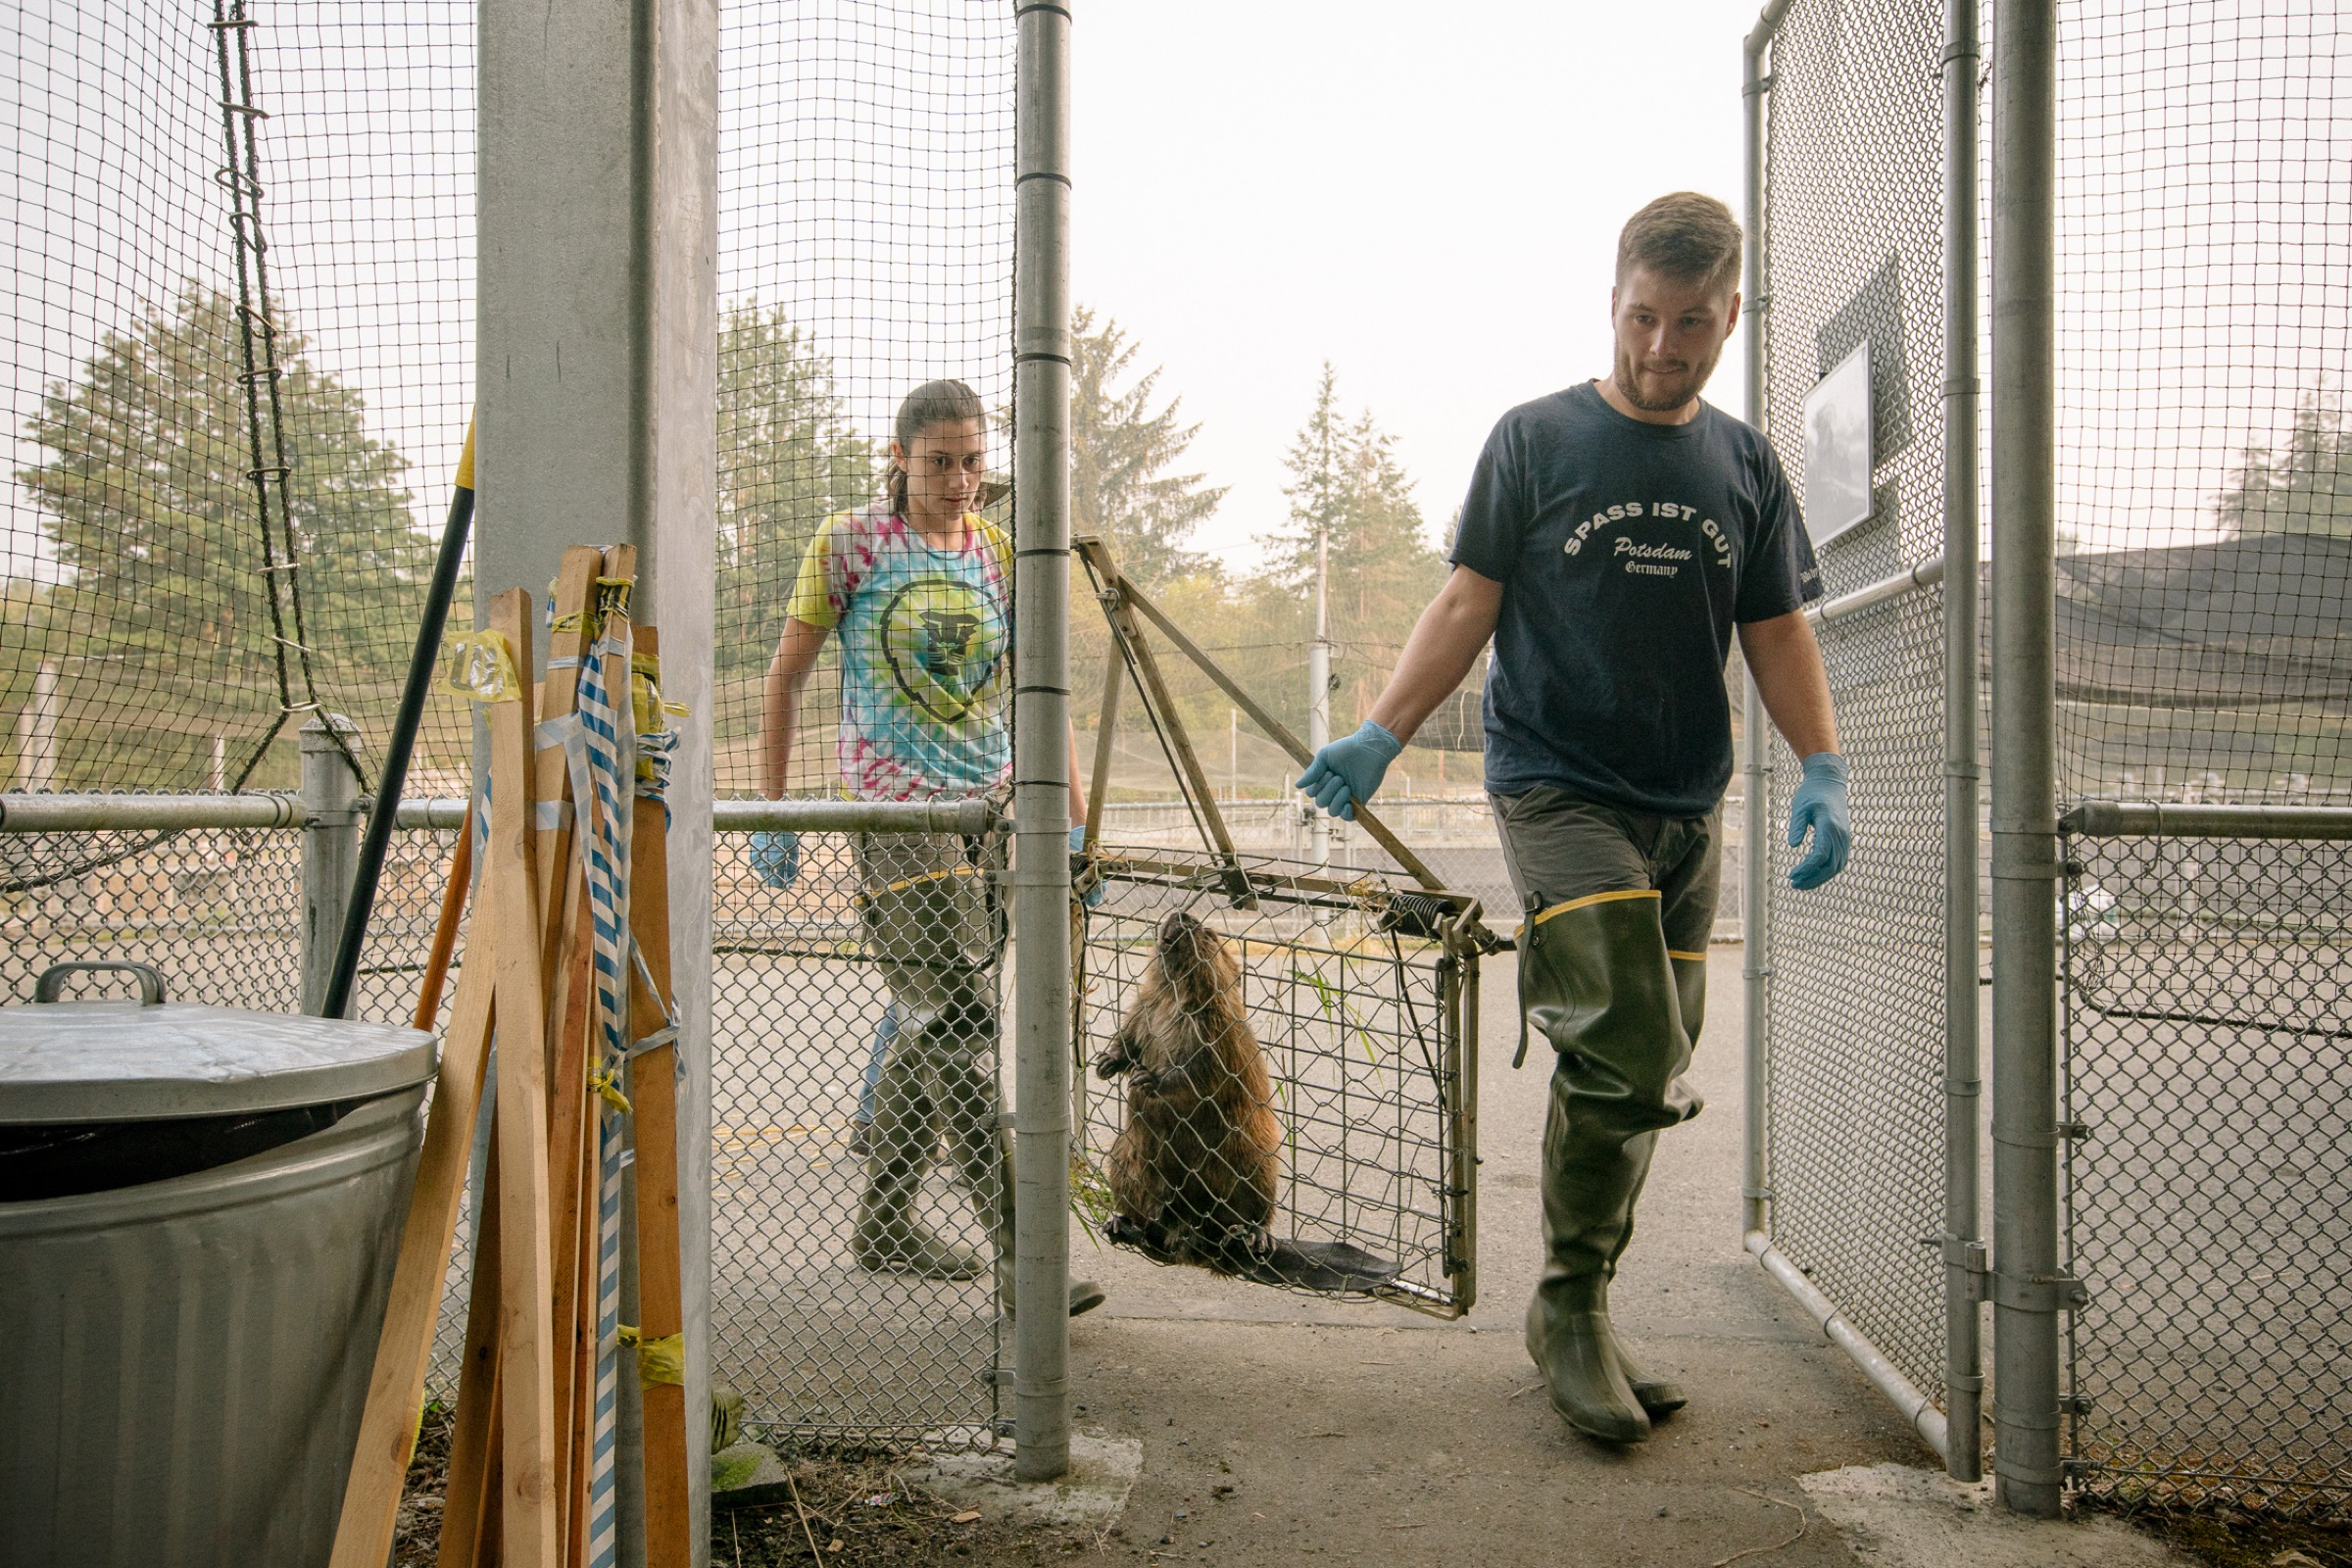 After processing, biologists Molly Alves and David Bailey carry a trapped beaver toward one of the Tulalip fish hatchery raceways where the rodent will bide its time until it is released back into the wild.